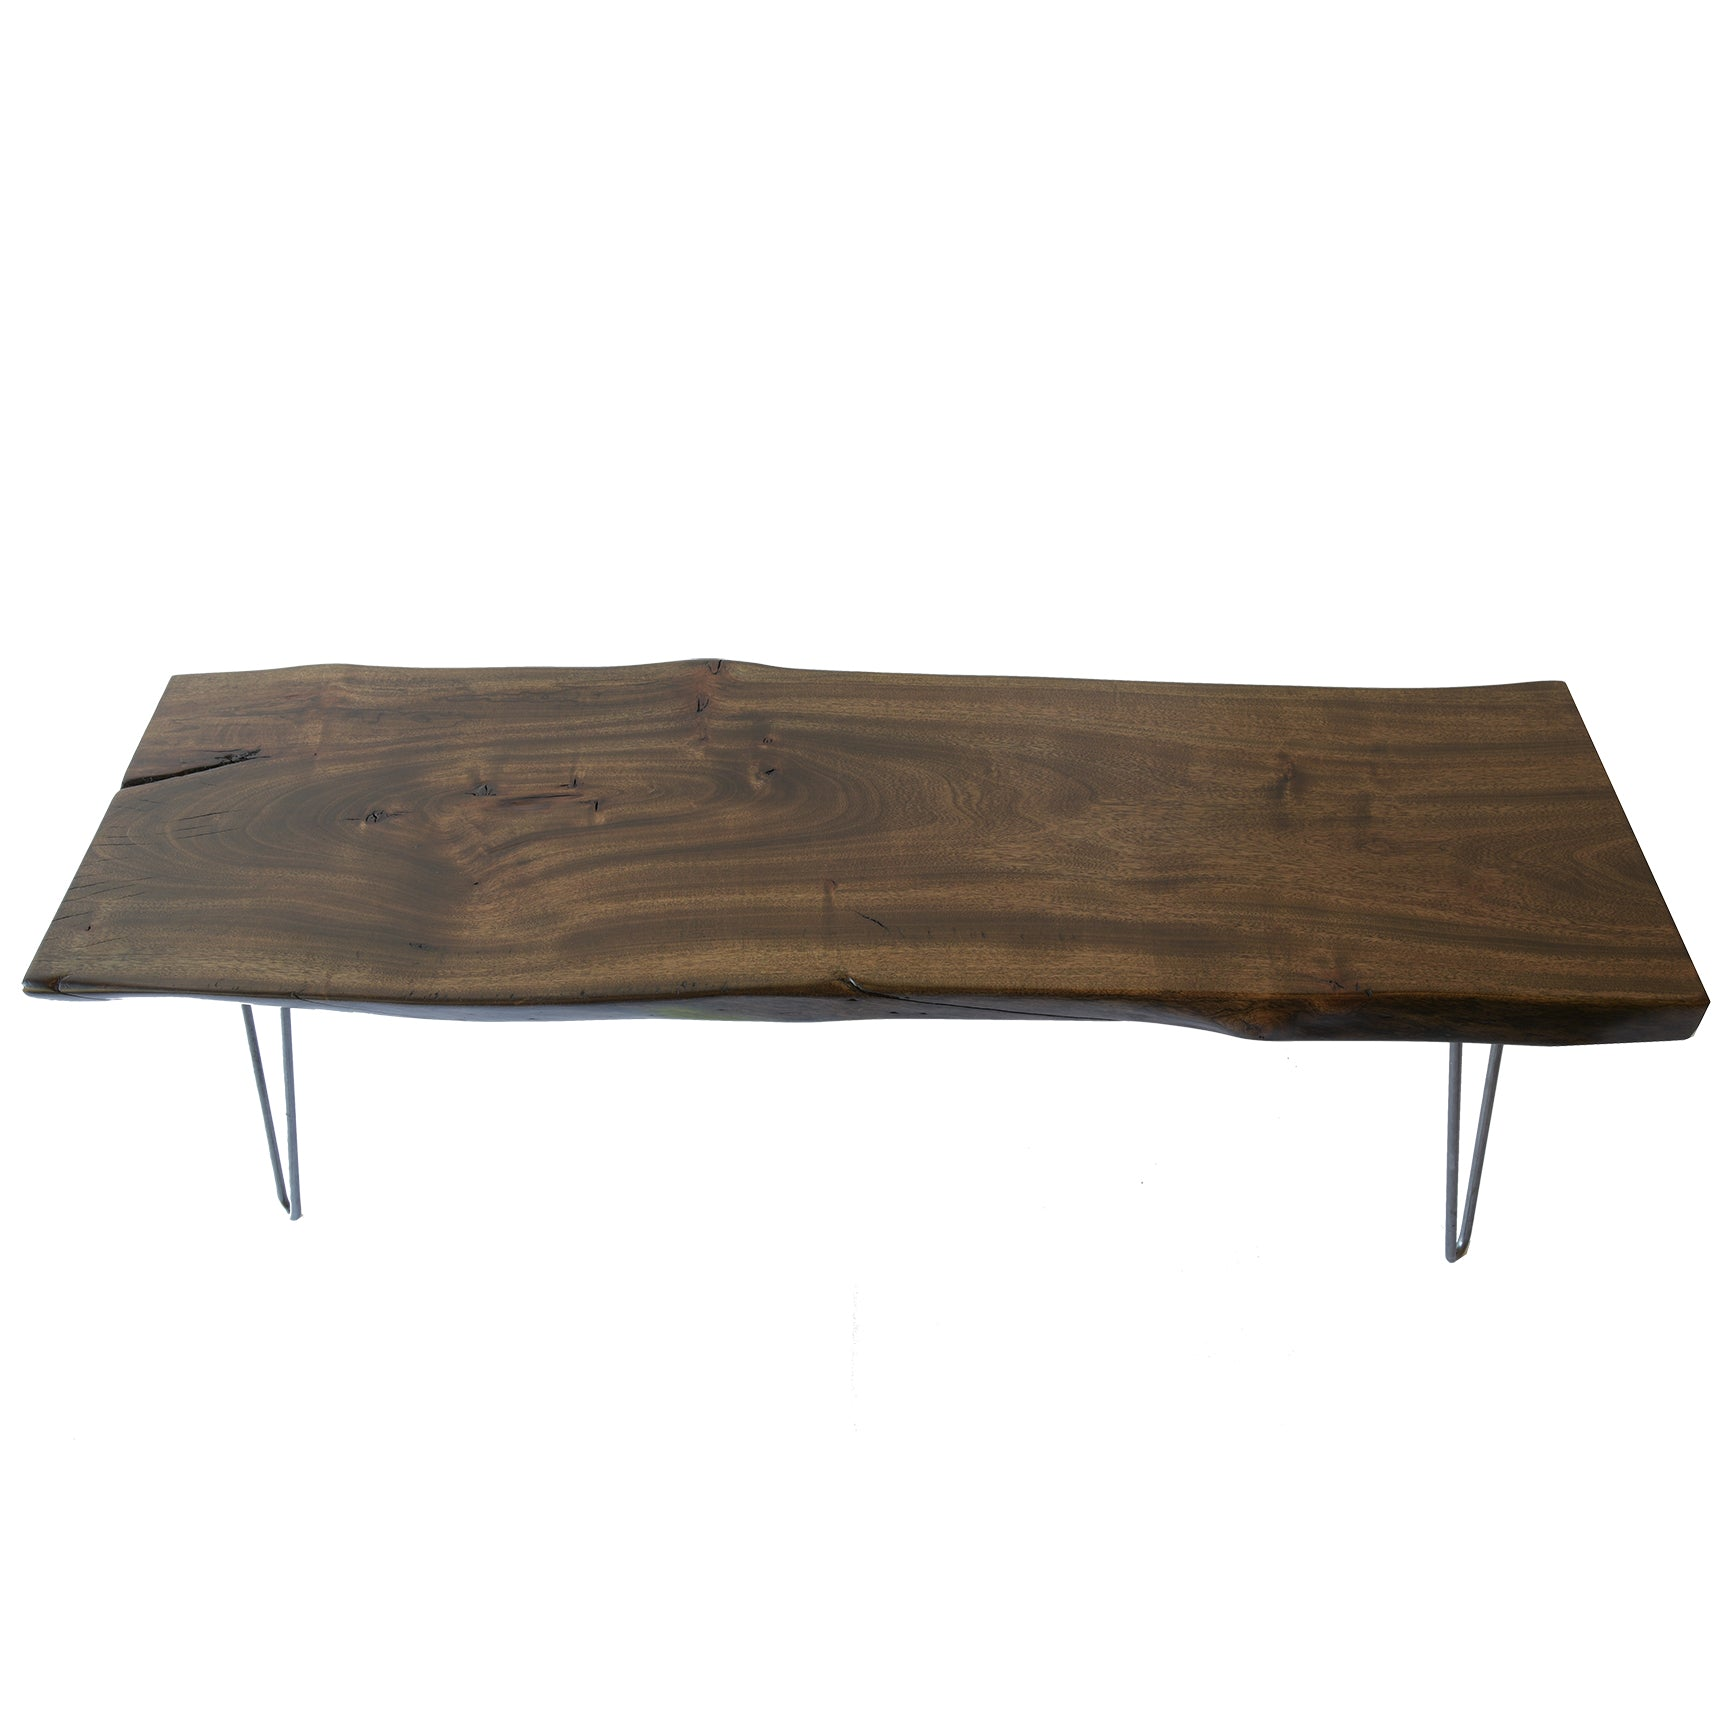 Rustic Handmade Slab Coffee Table